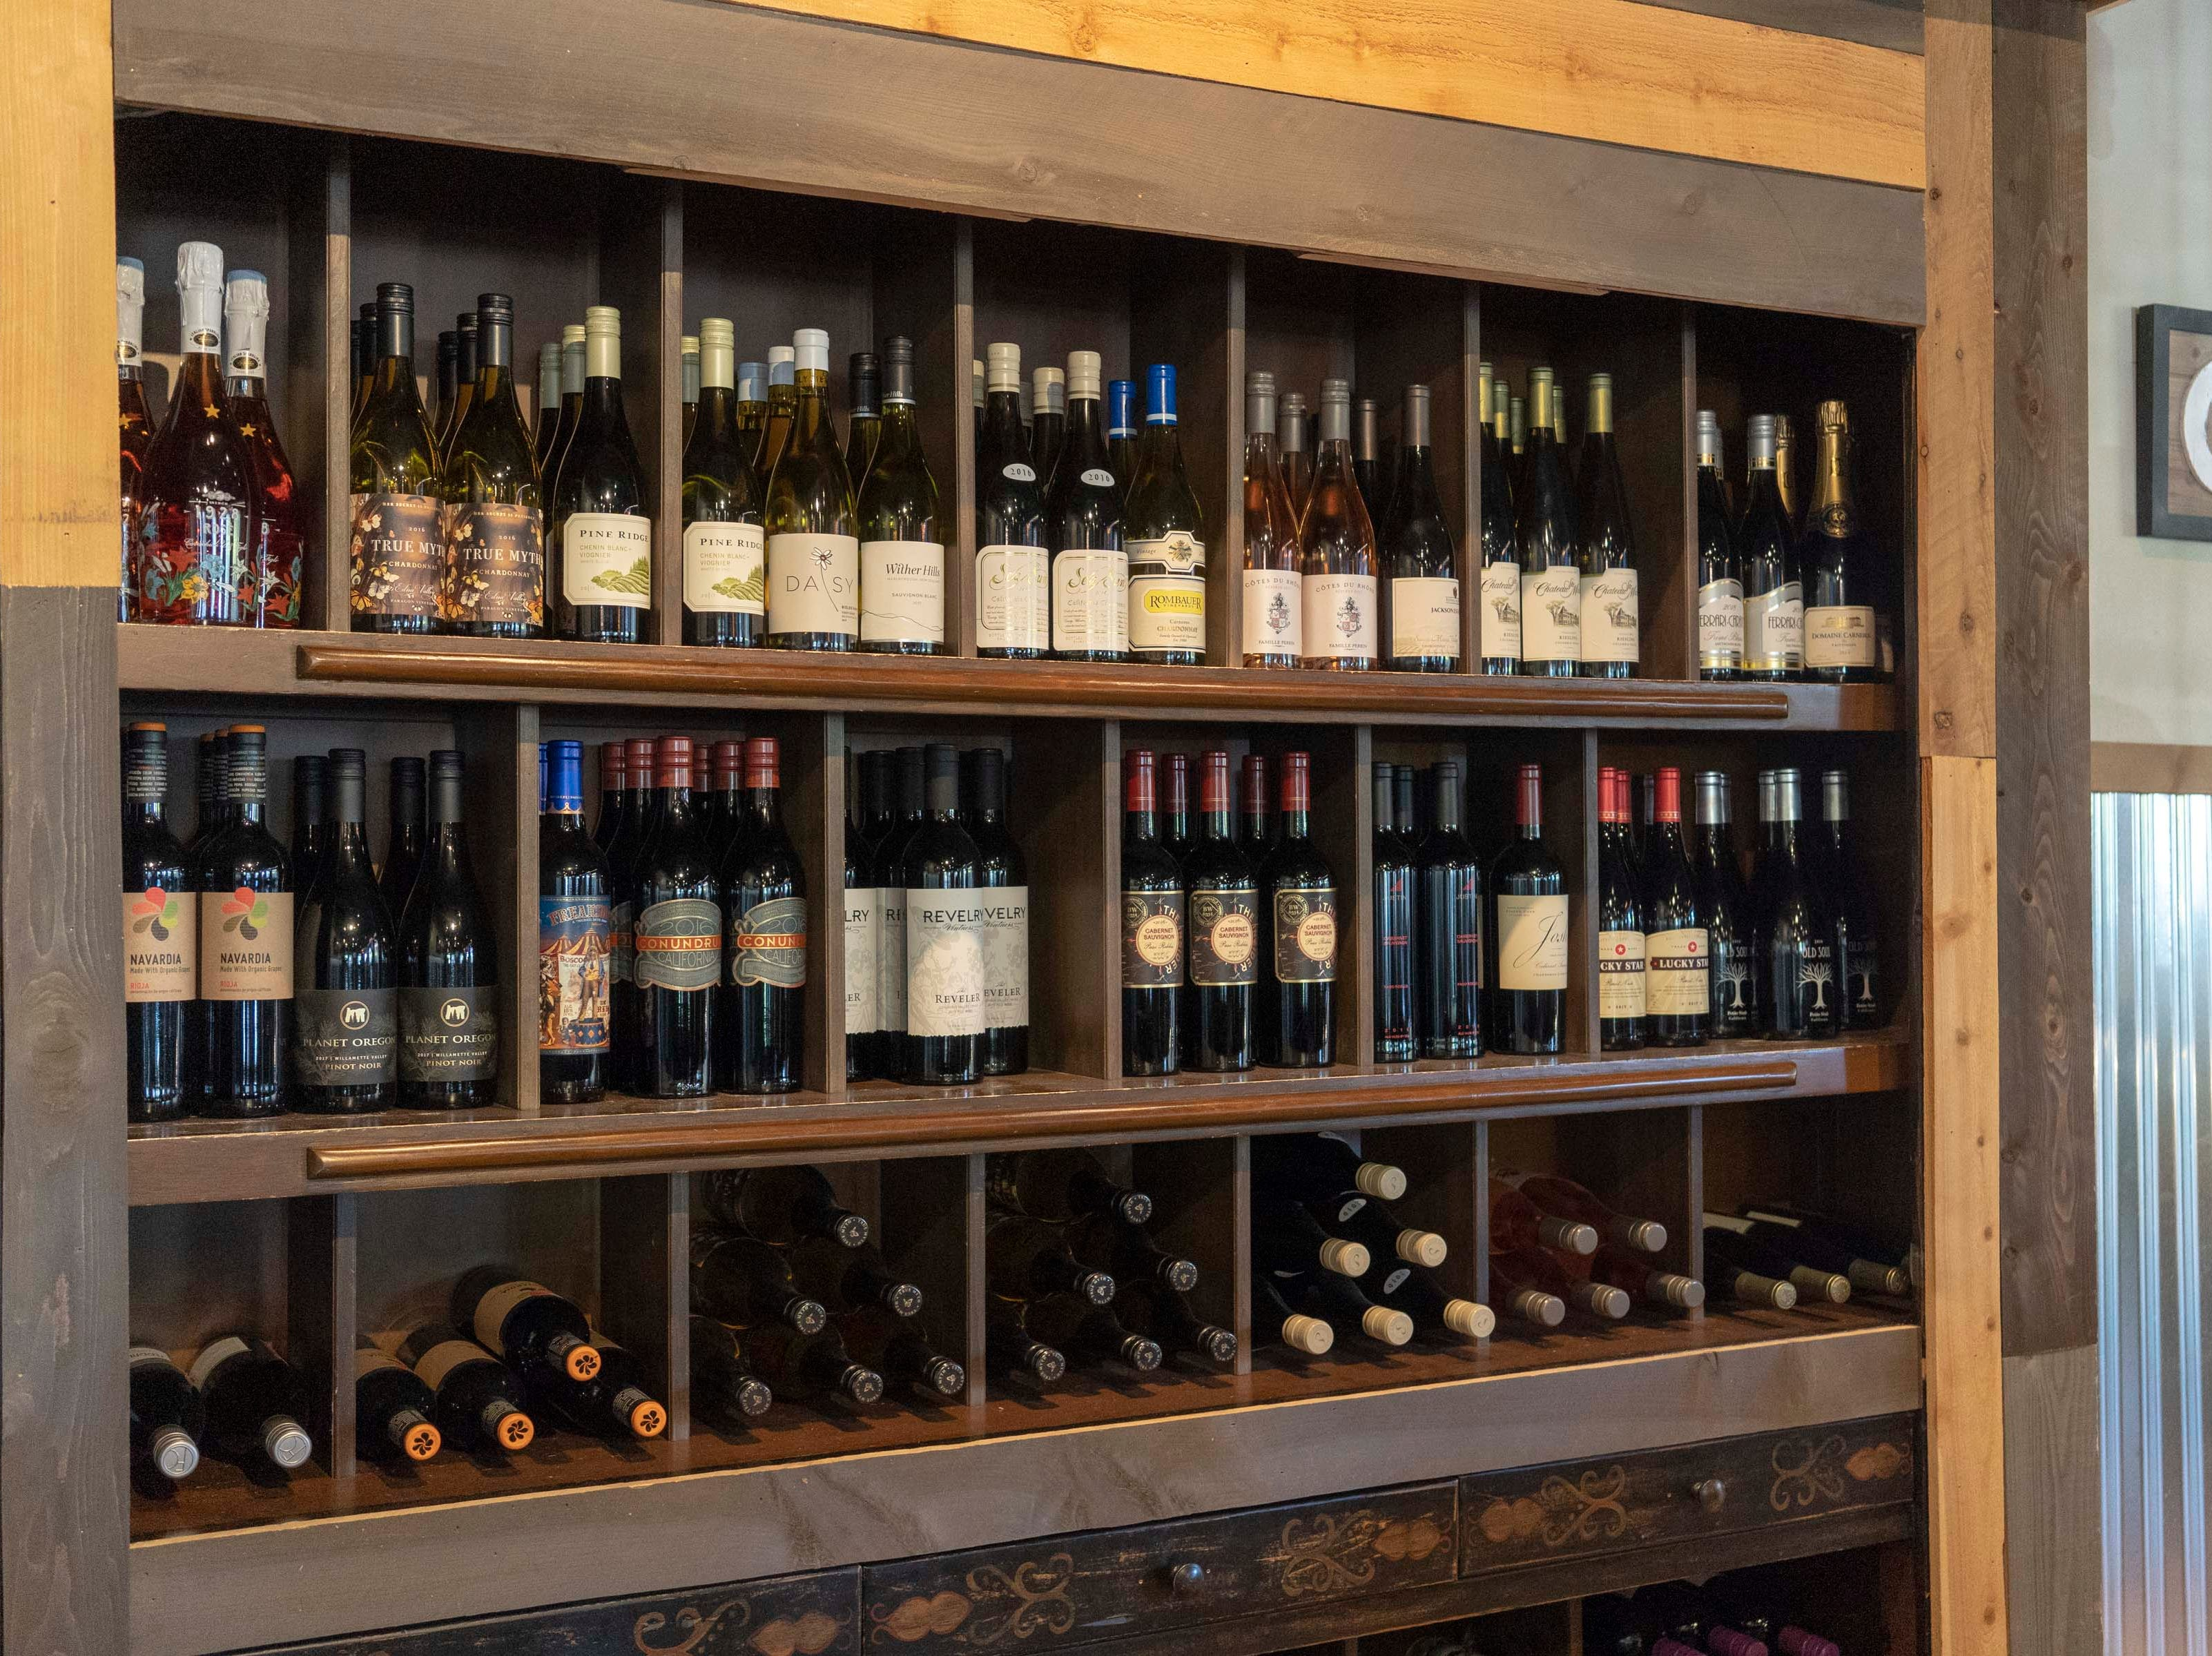 Urban Margarita offers a wine room for special events.